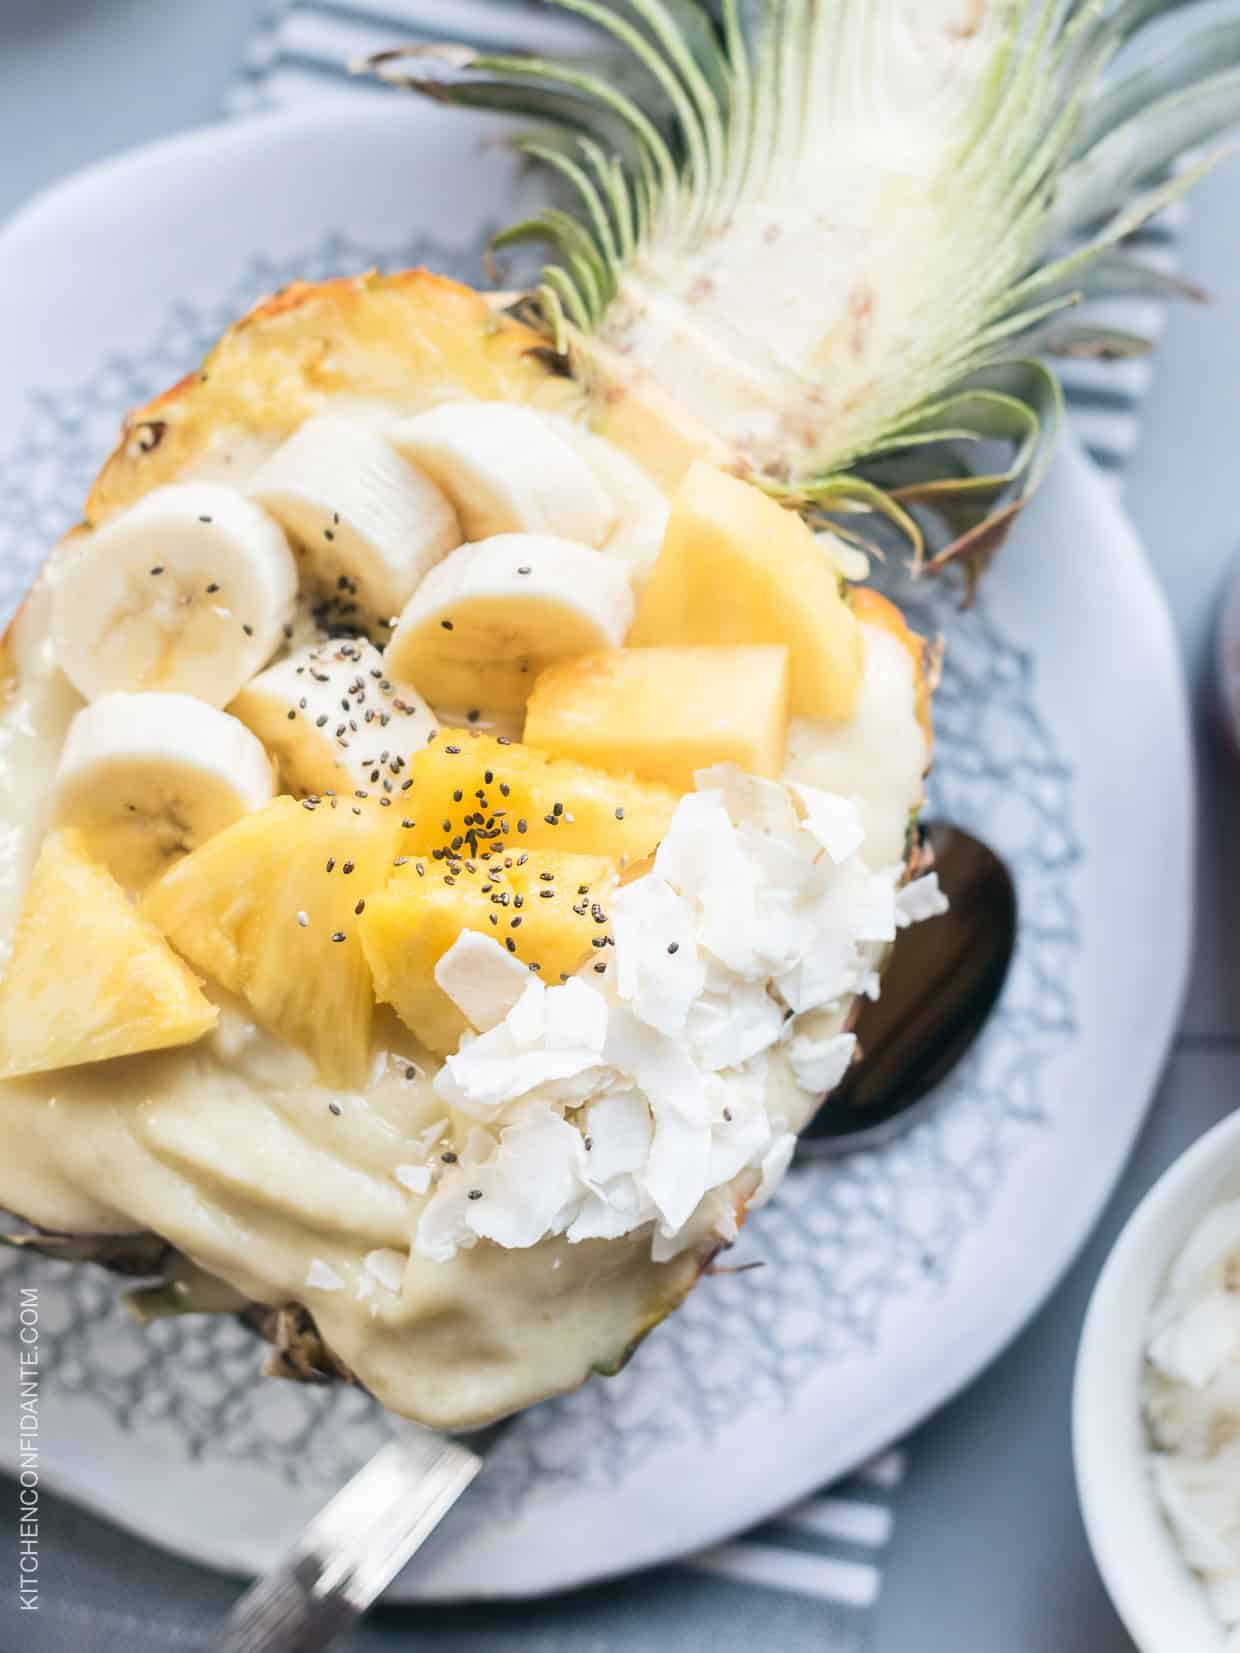 Smoothies are more fun by the spoonful. This recipe for a Pineapple Smoothie Bowl will keep you energized to conquer the day.